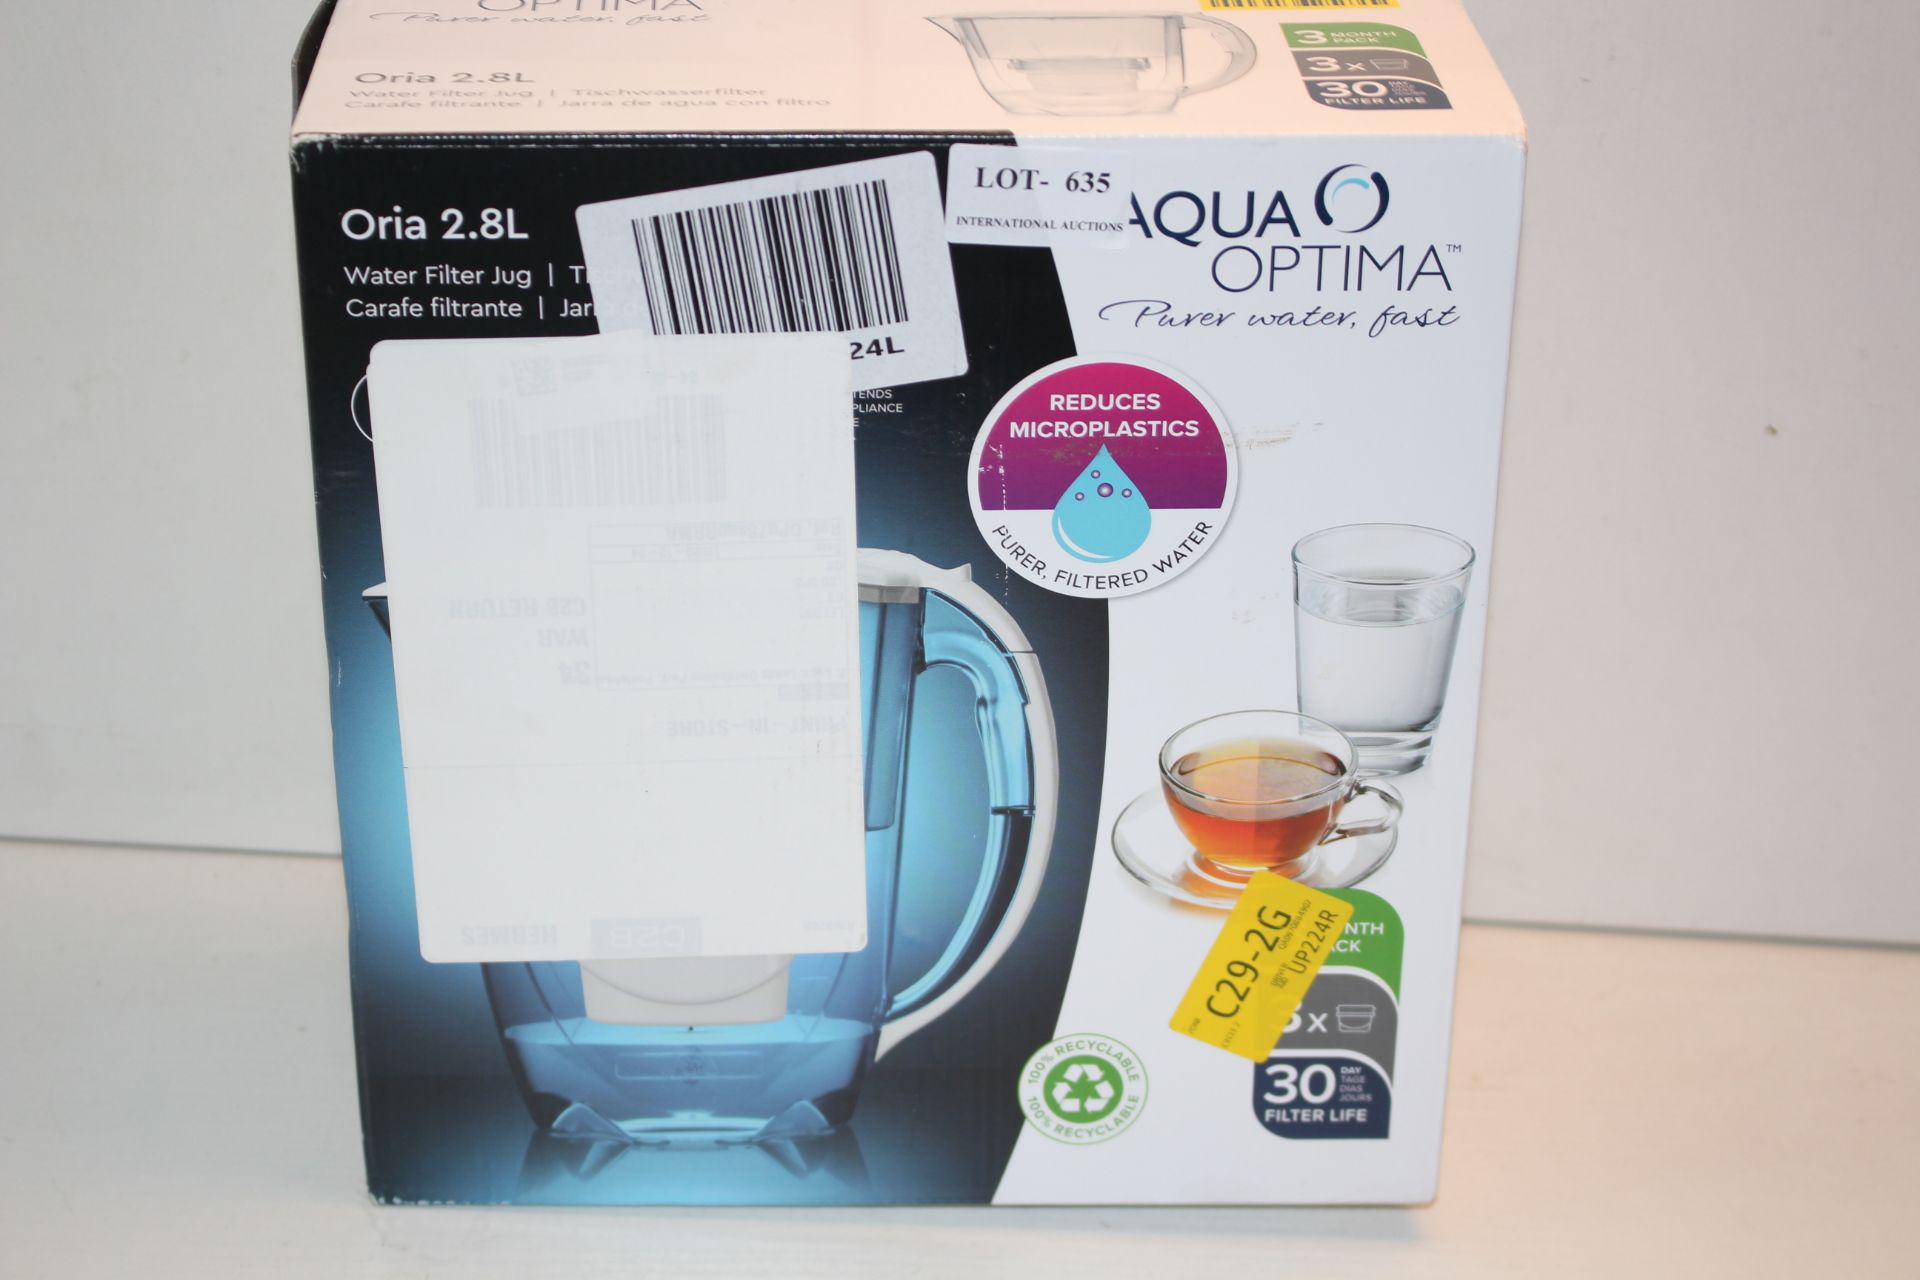 BOXED AQUA OPTIMA ORIA 2.87L FILTER JUGCondition ReportAppraisal Available on Request- All Items are